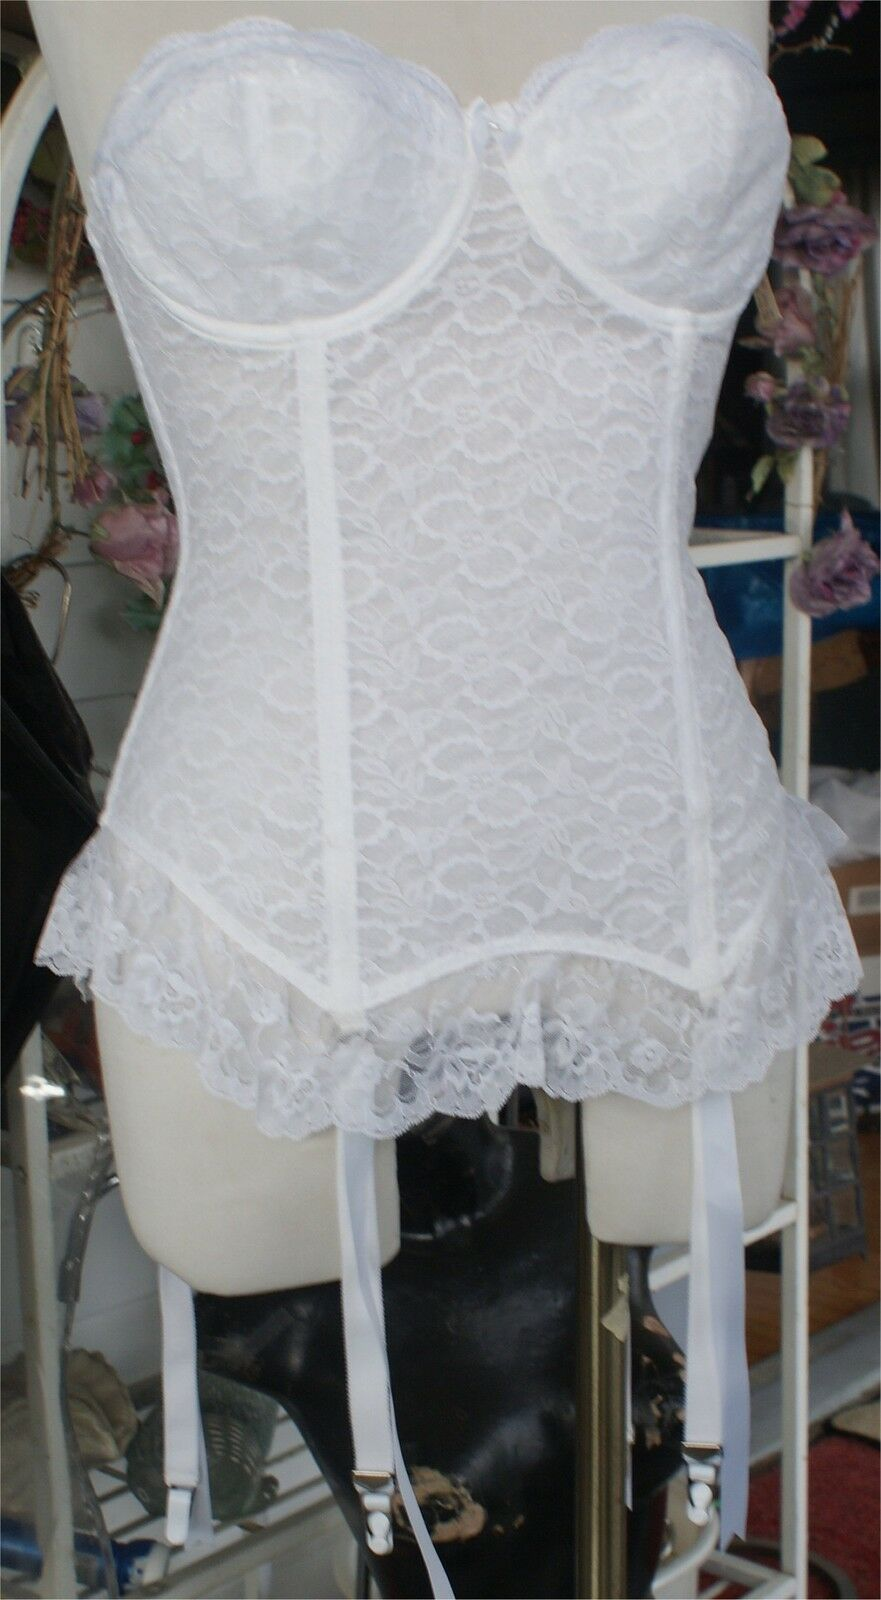 NWT WHITE LACE GARTER  GODDESS  BUSTIER BRA COSTUME DANCER SIZE 32 C FANCY  SEXY